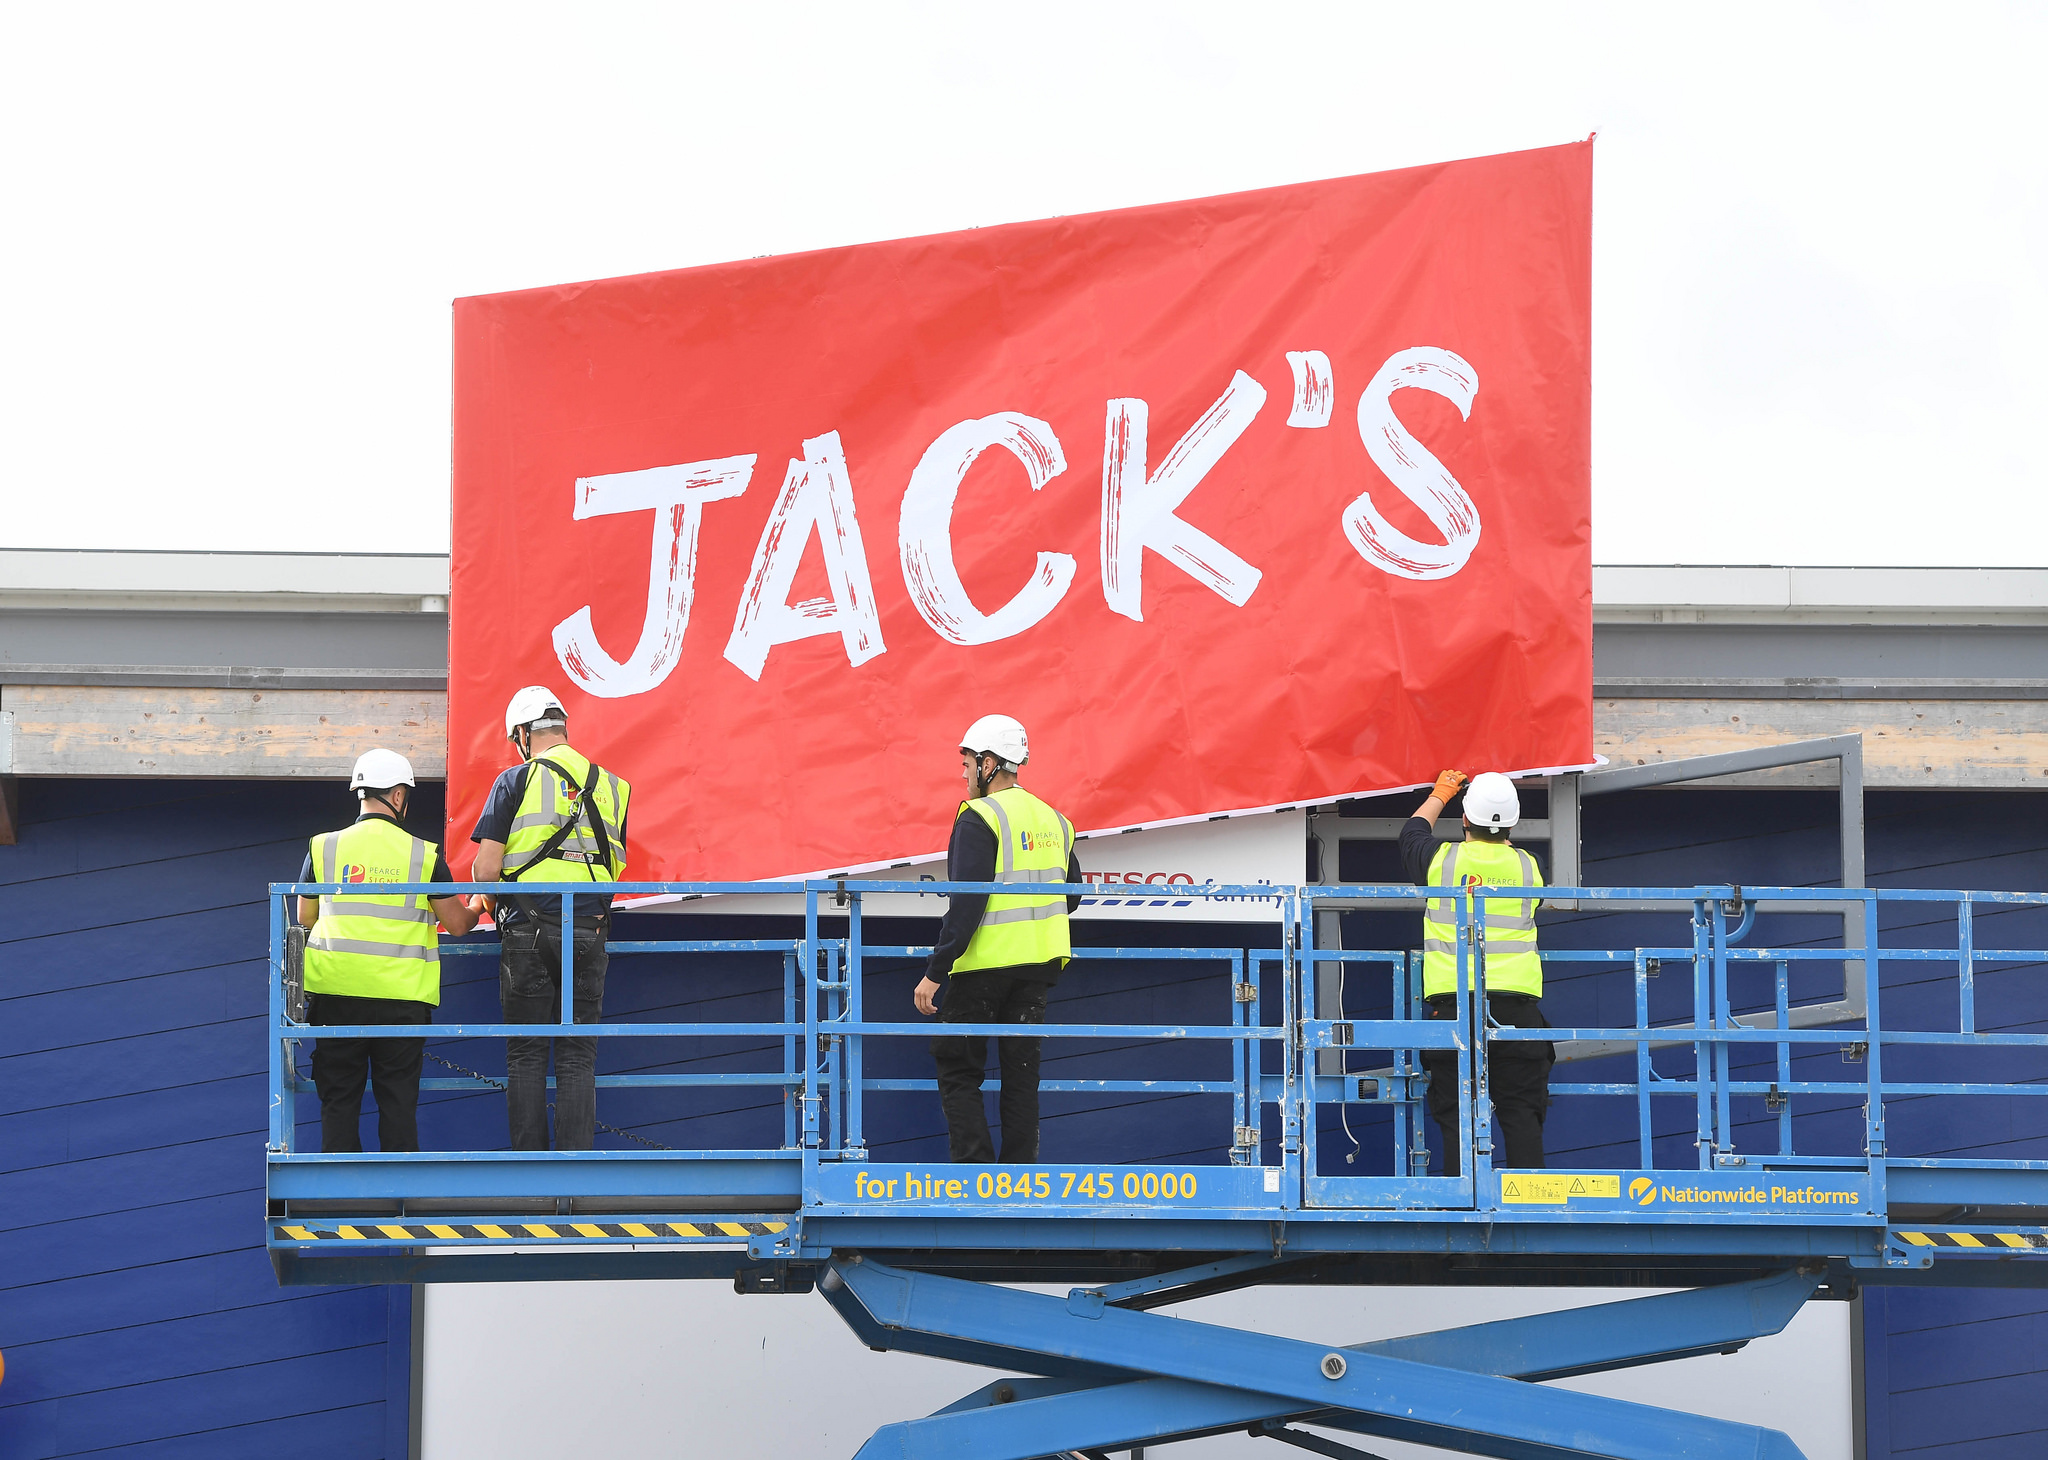 Jack's customers jumping for joy?